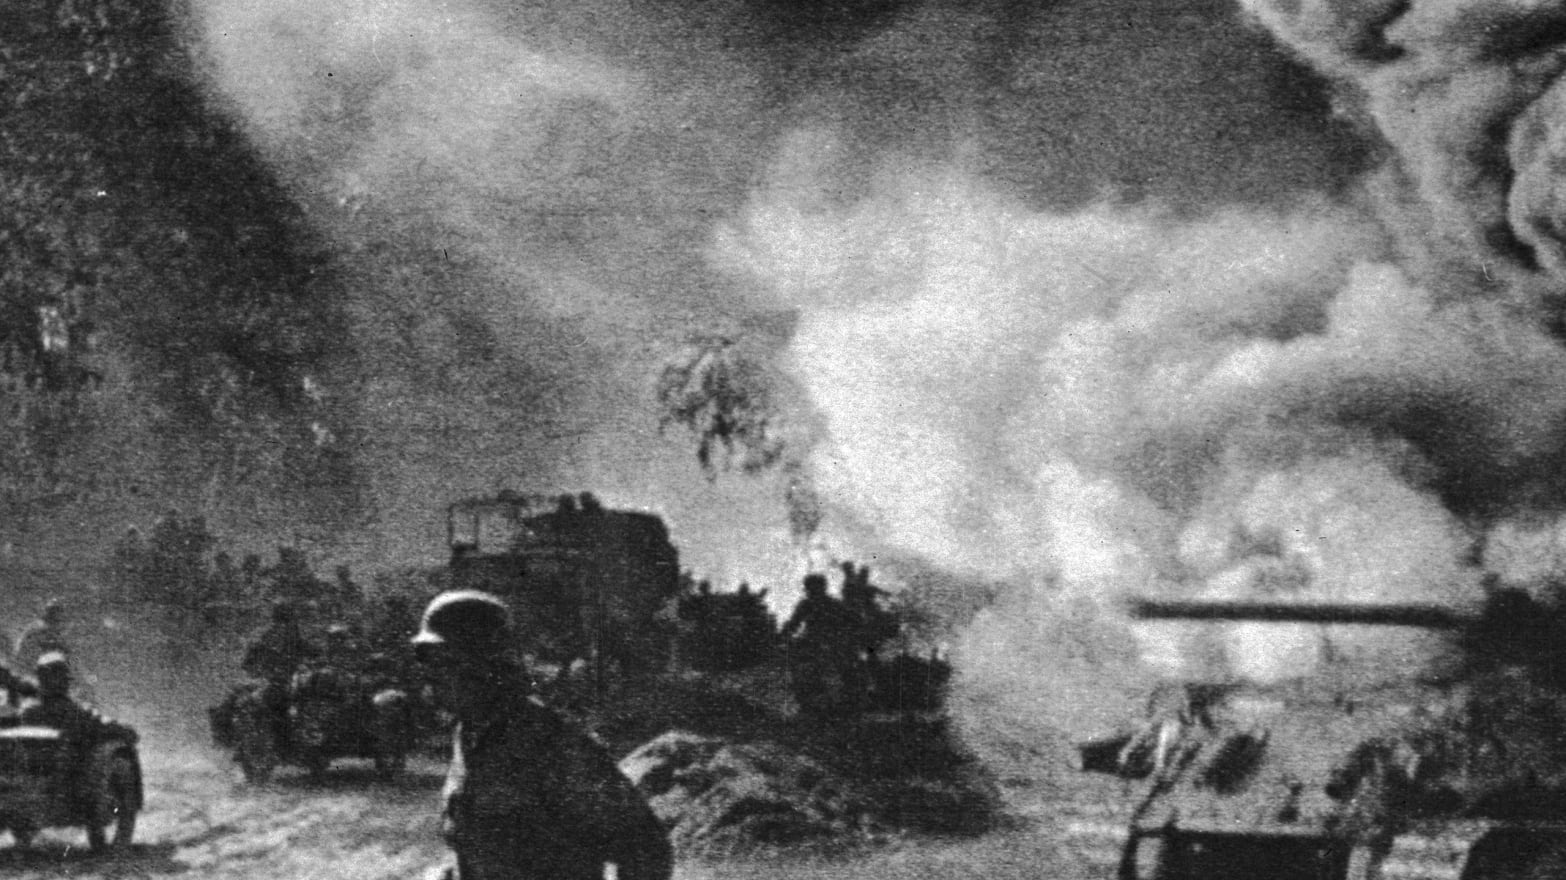 Wwii S Greatest Battle How Kursk Changed The War